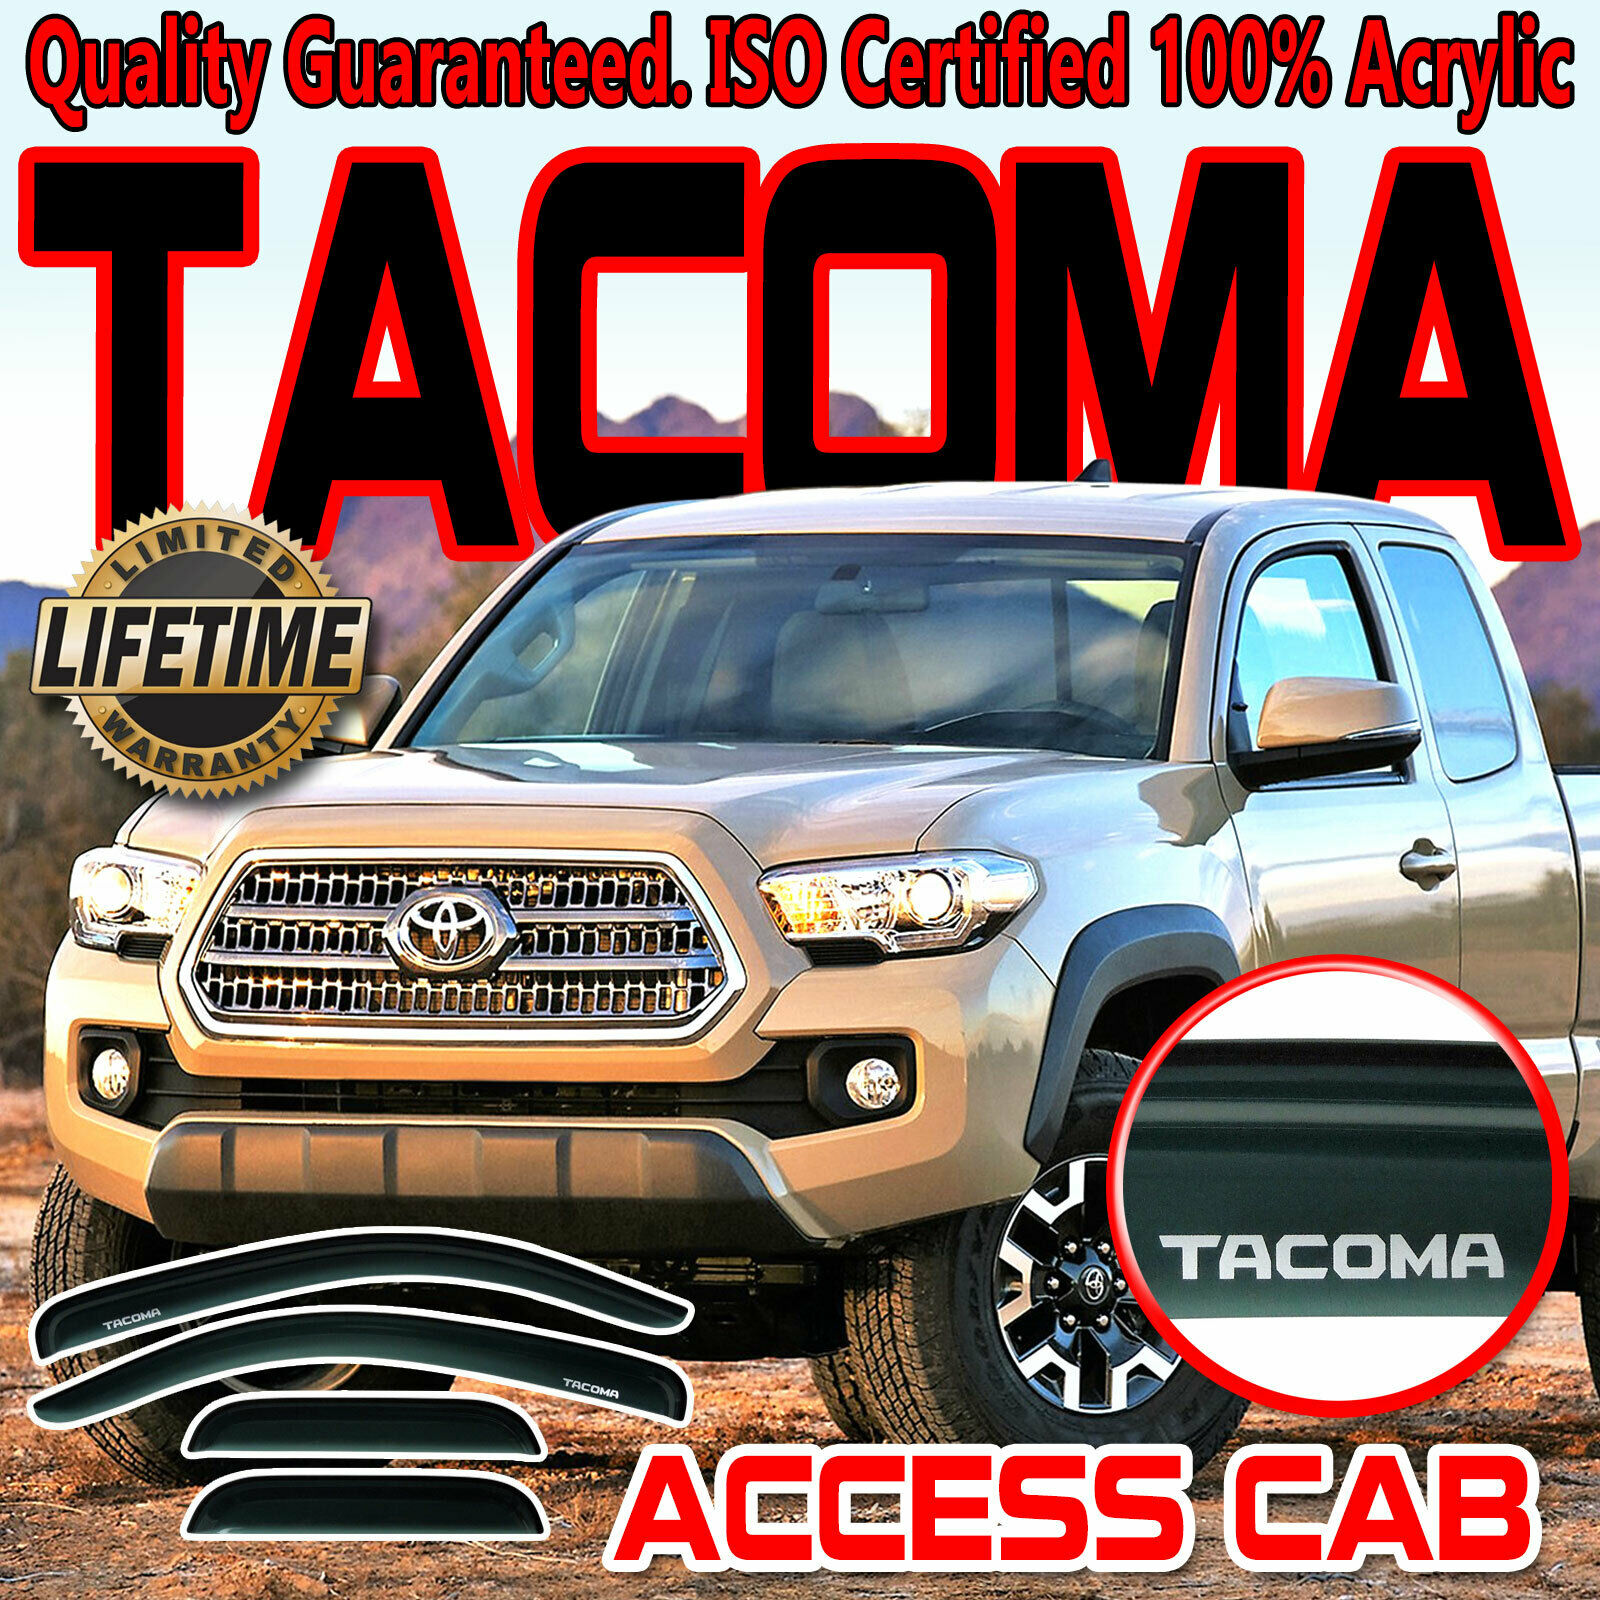 Toyota Tacoma 2015-2018 Service Manual: Wiper Switch